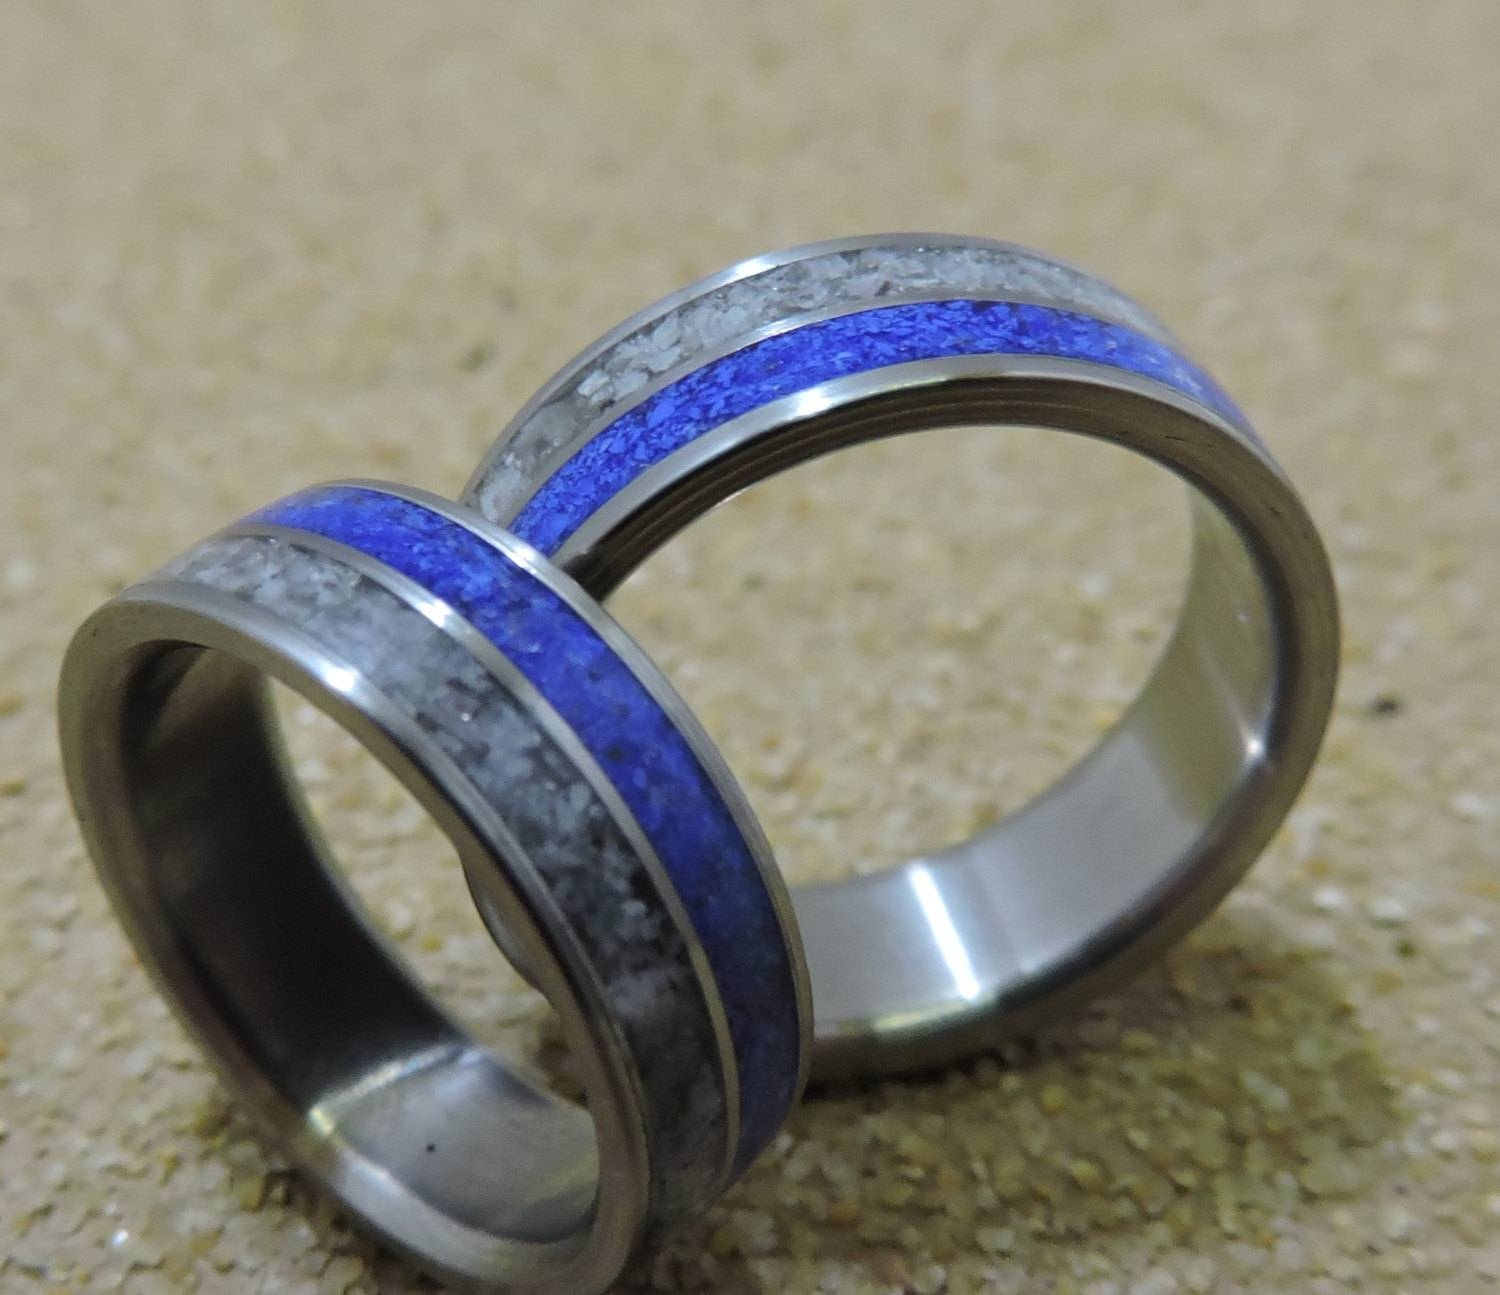 Titanium Rings, Wedding Rings, His And Hers Rings, Wedding Band Regarding Handmade Mens Wedding Rings (View 13 of 15)